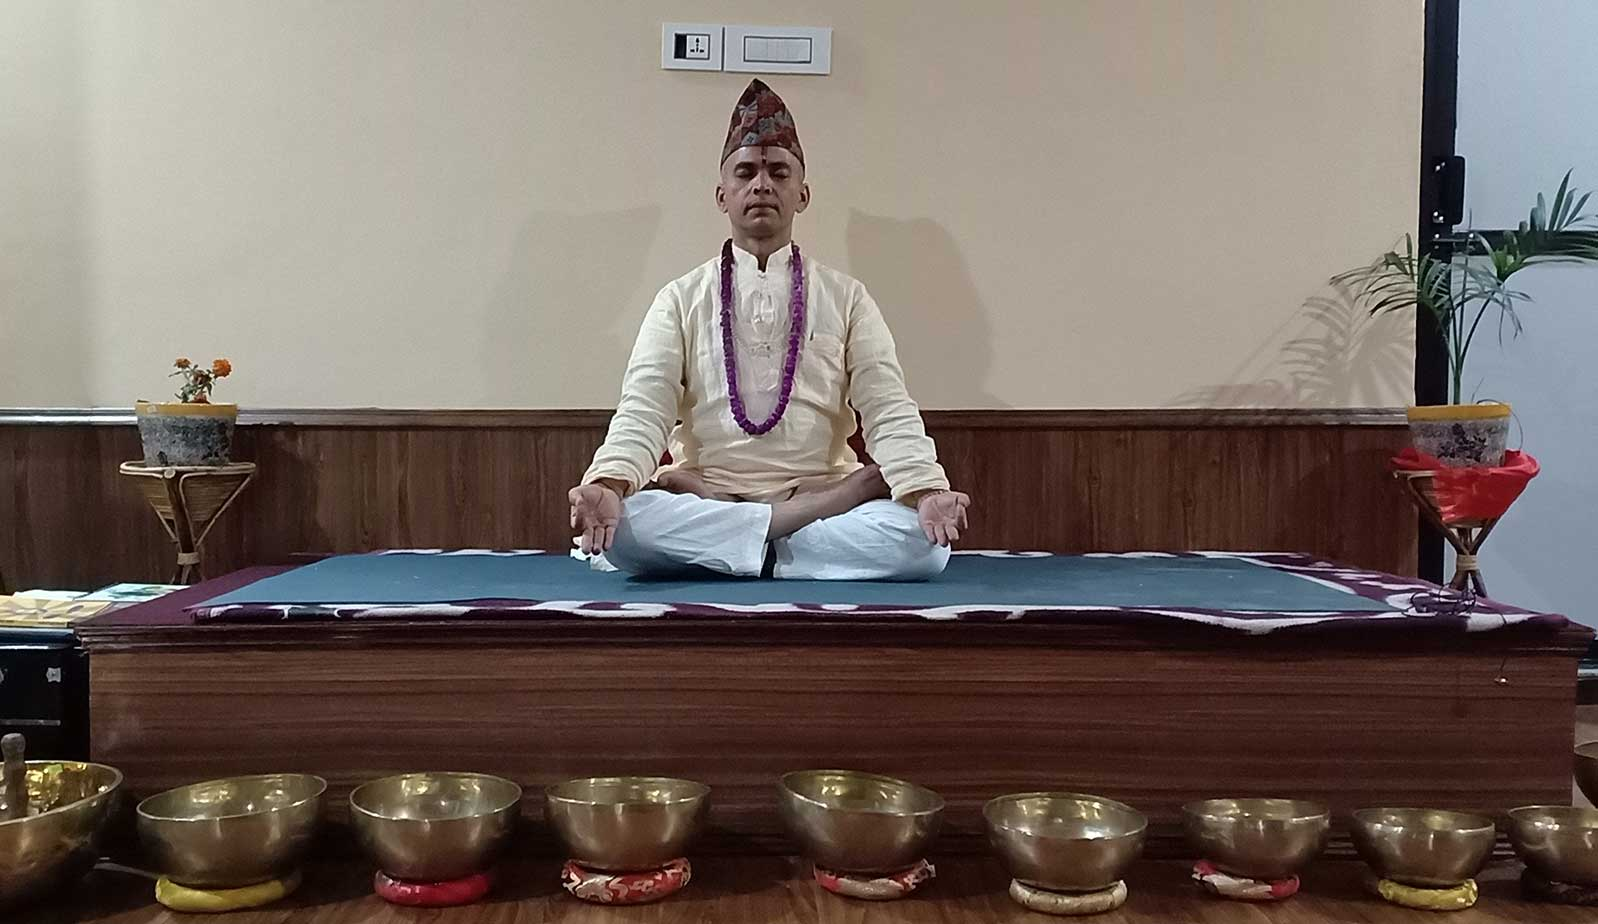 In The Yoga Tradition Divine Knowledge and Cultivation